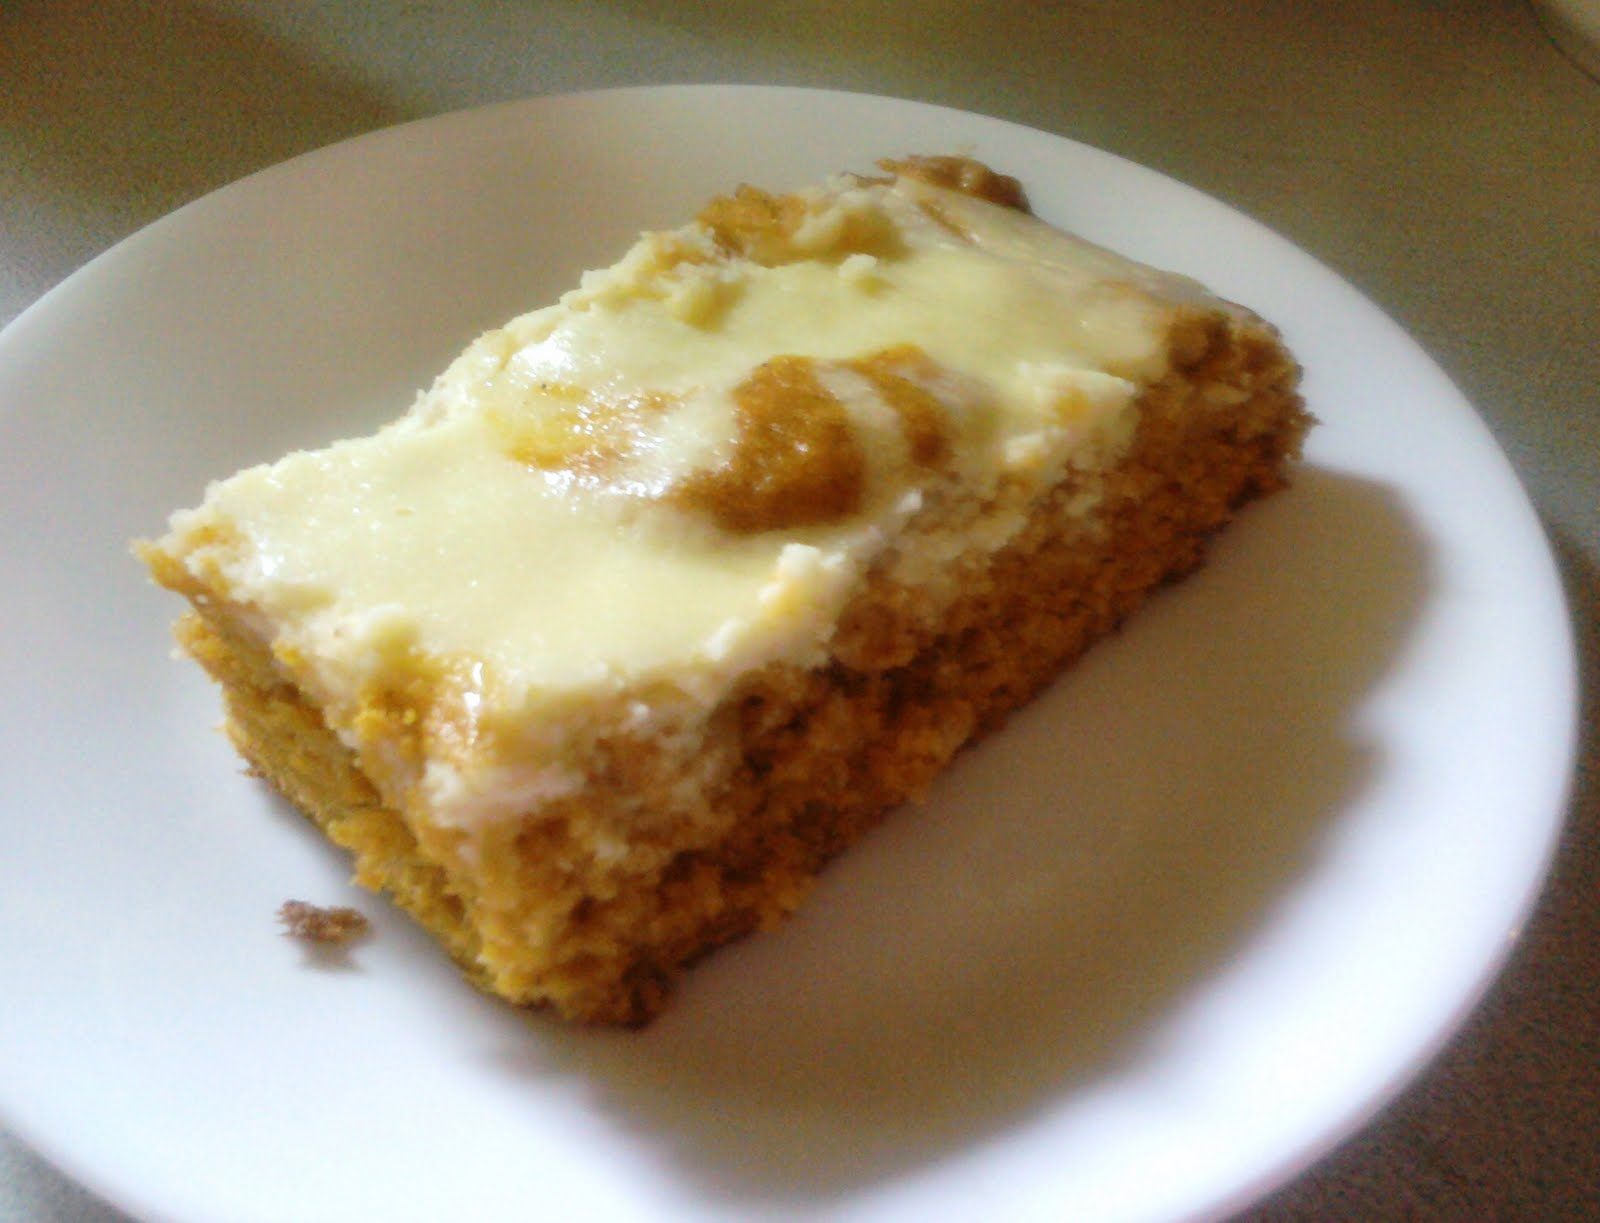 From Mess Hall to Bistro: Pumpkin Cake with Cream Cheese Swirl